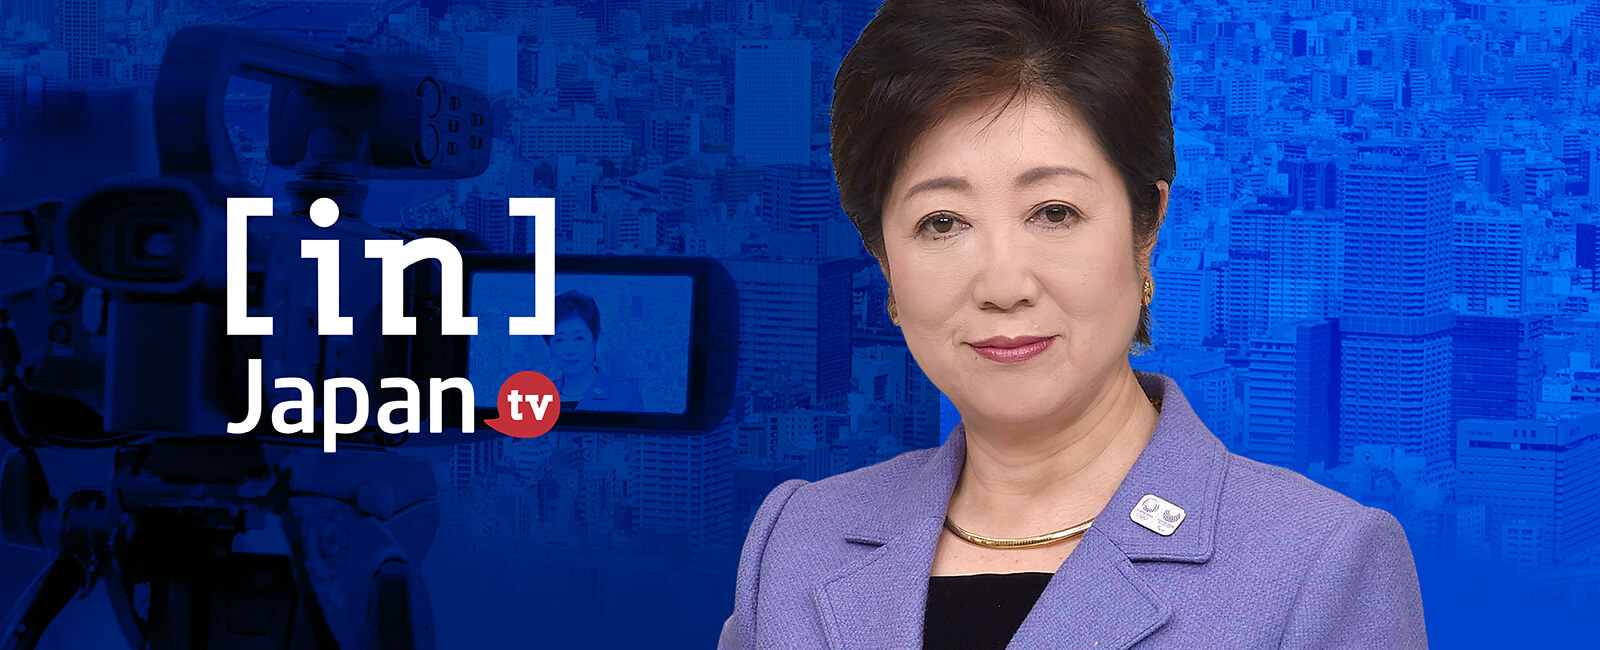 Video Updates on Covid-19 from Tokyo Metropolitan Government—in English